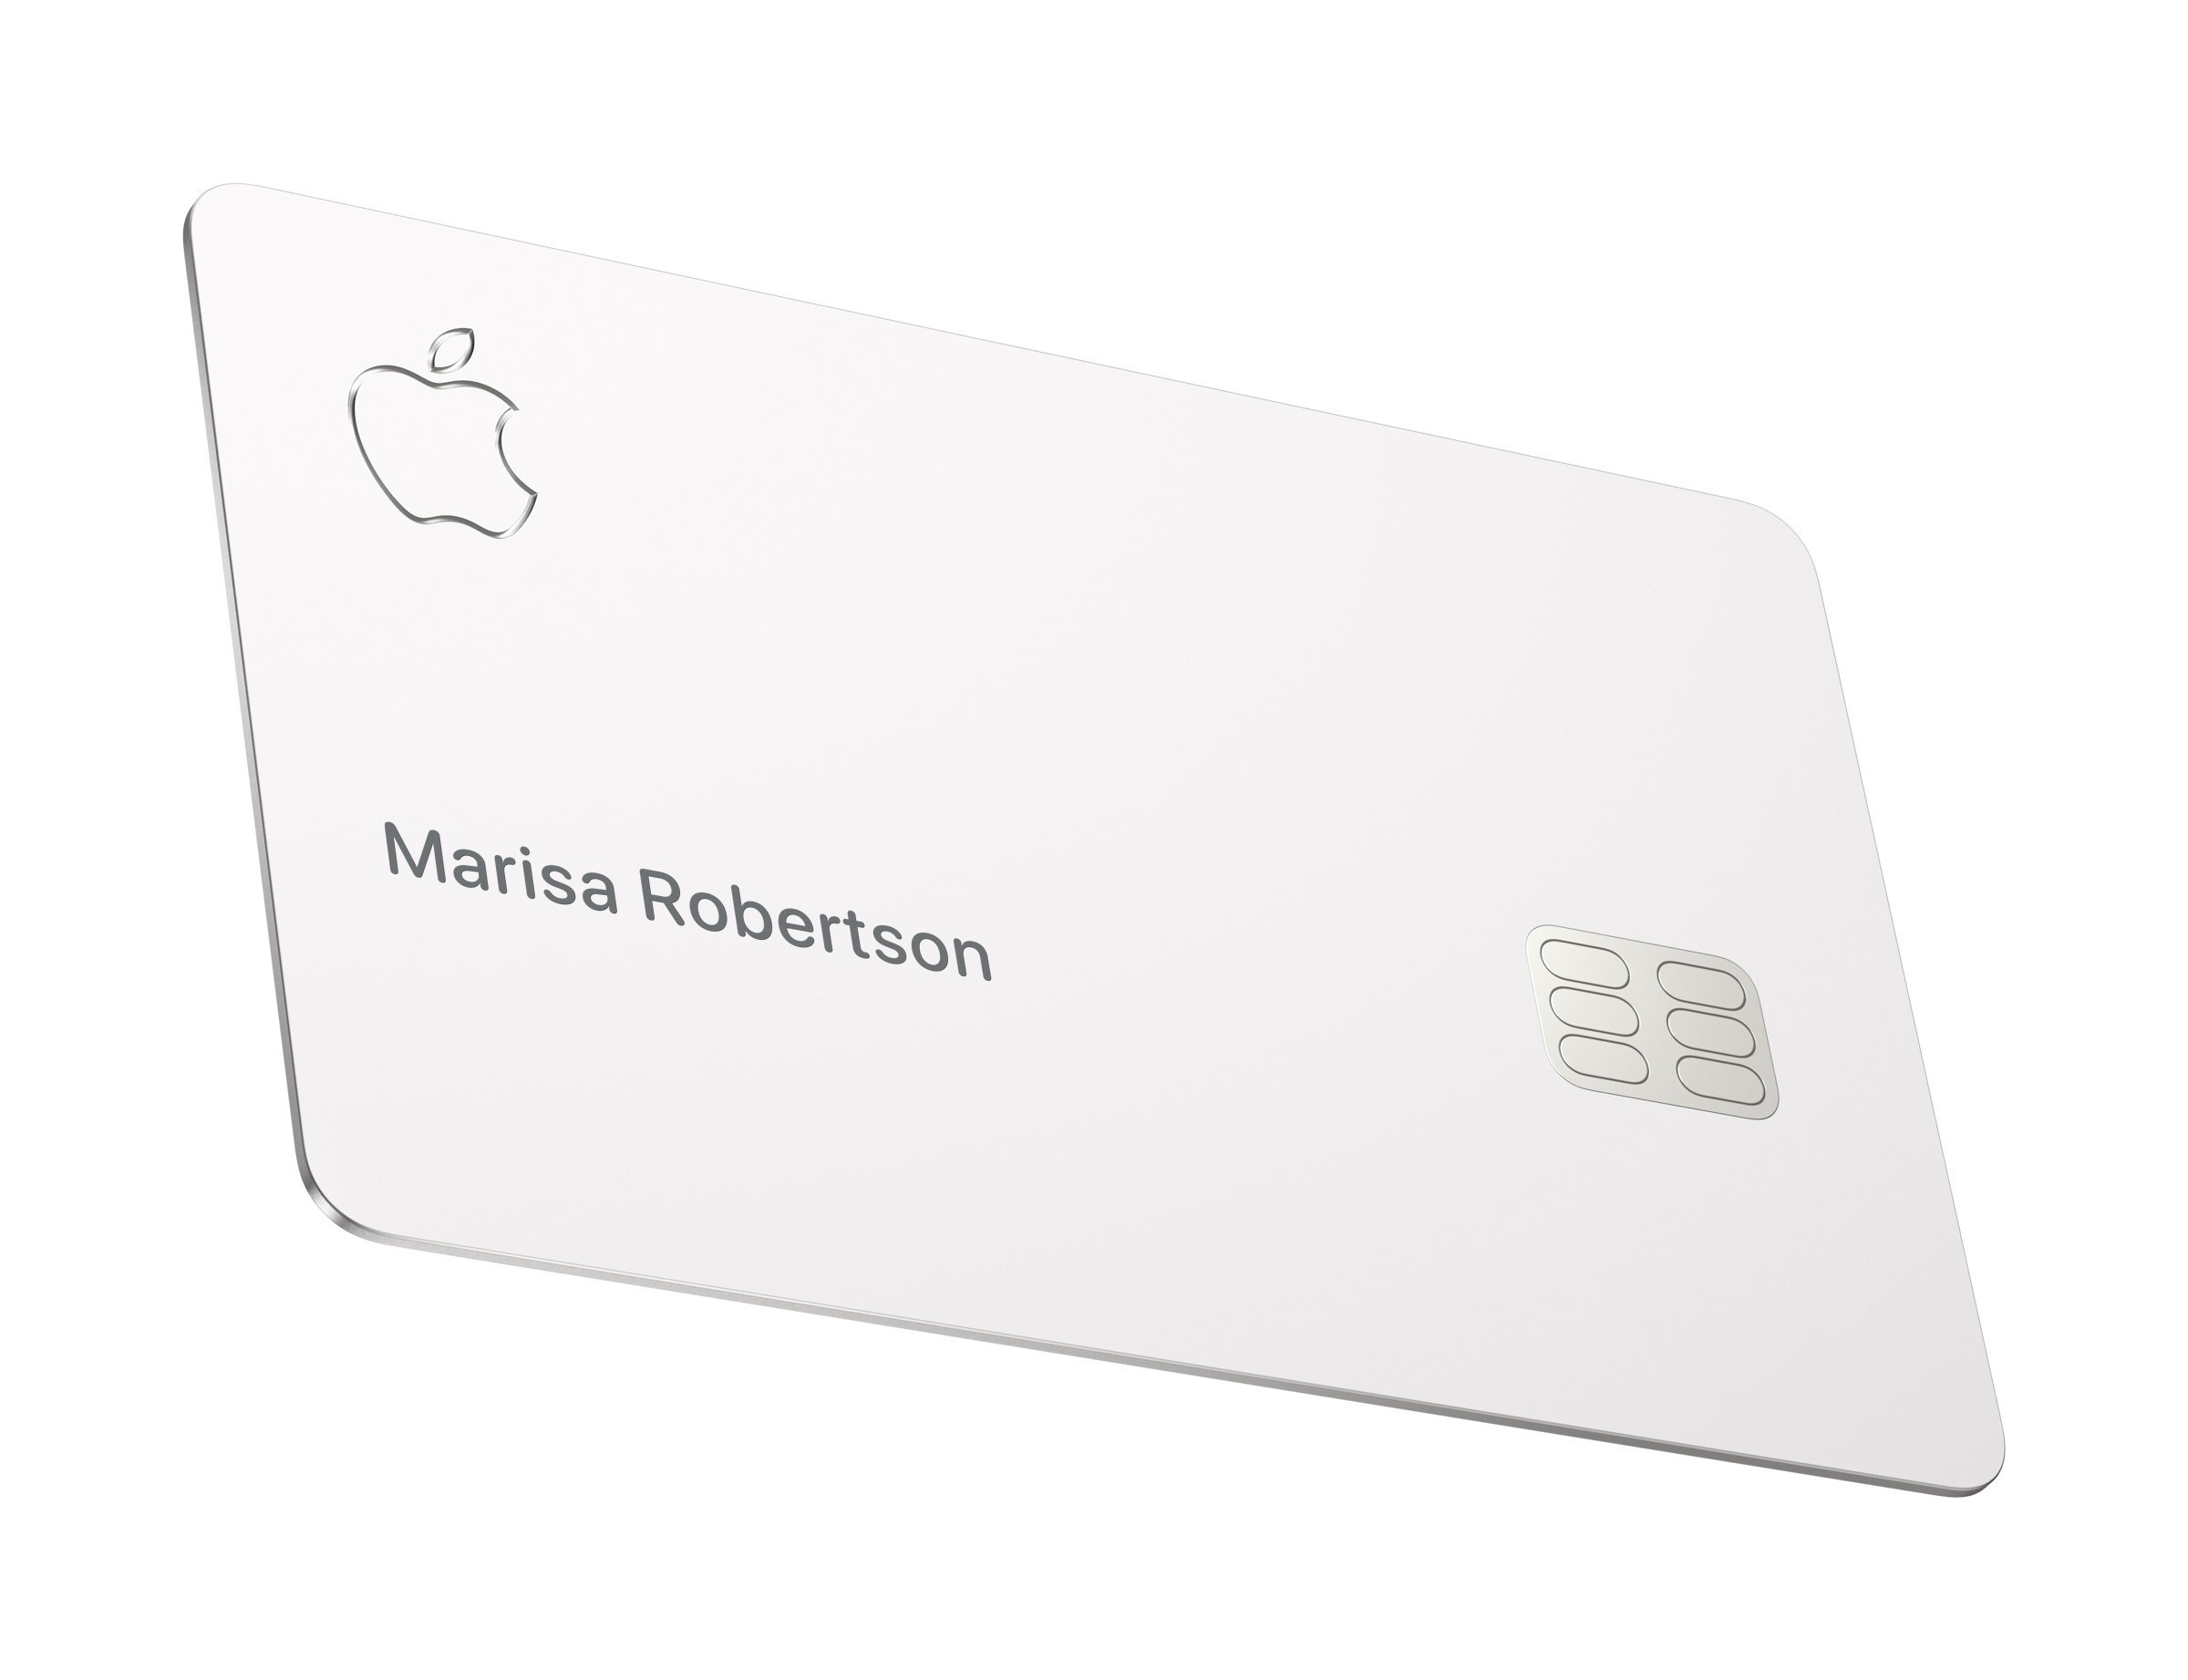 Apple card is accused of gender bias. Here's how that can happen